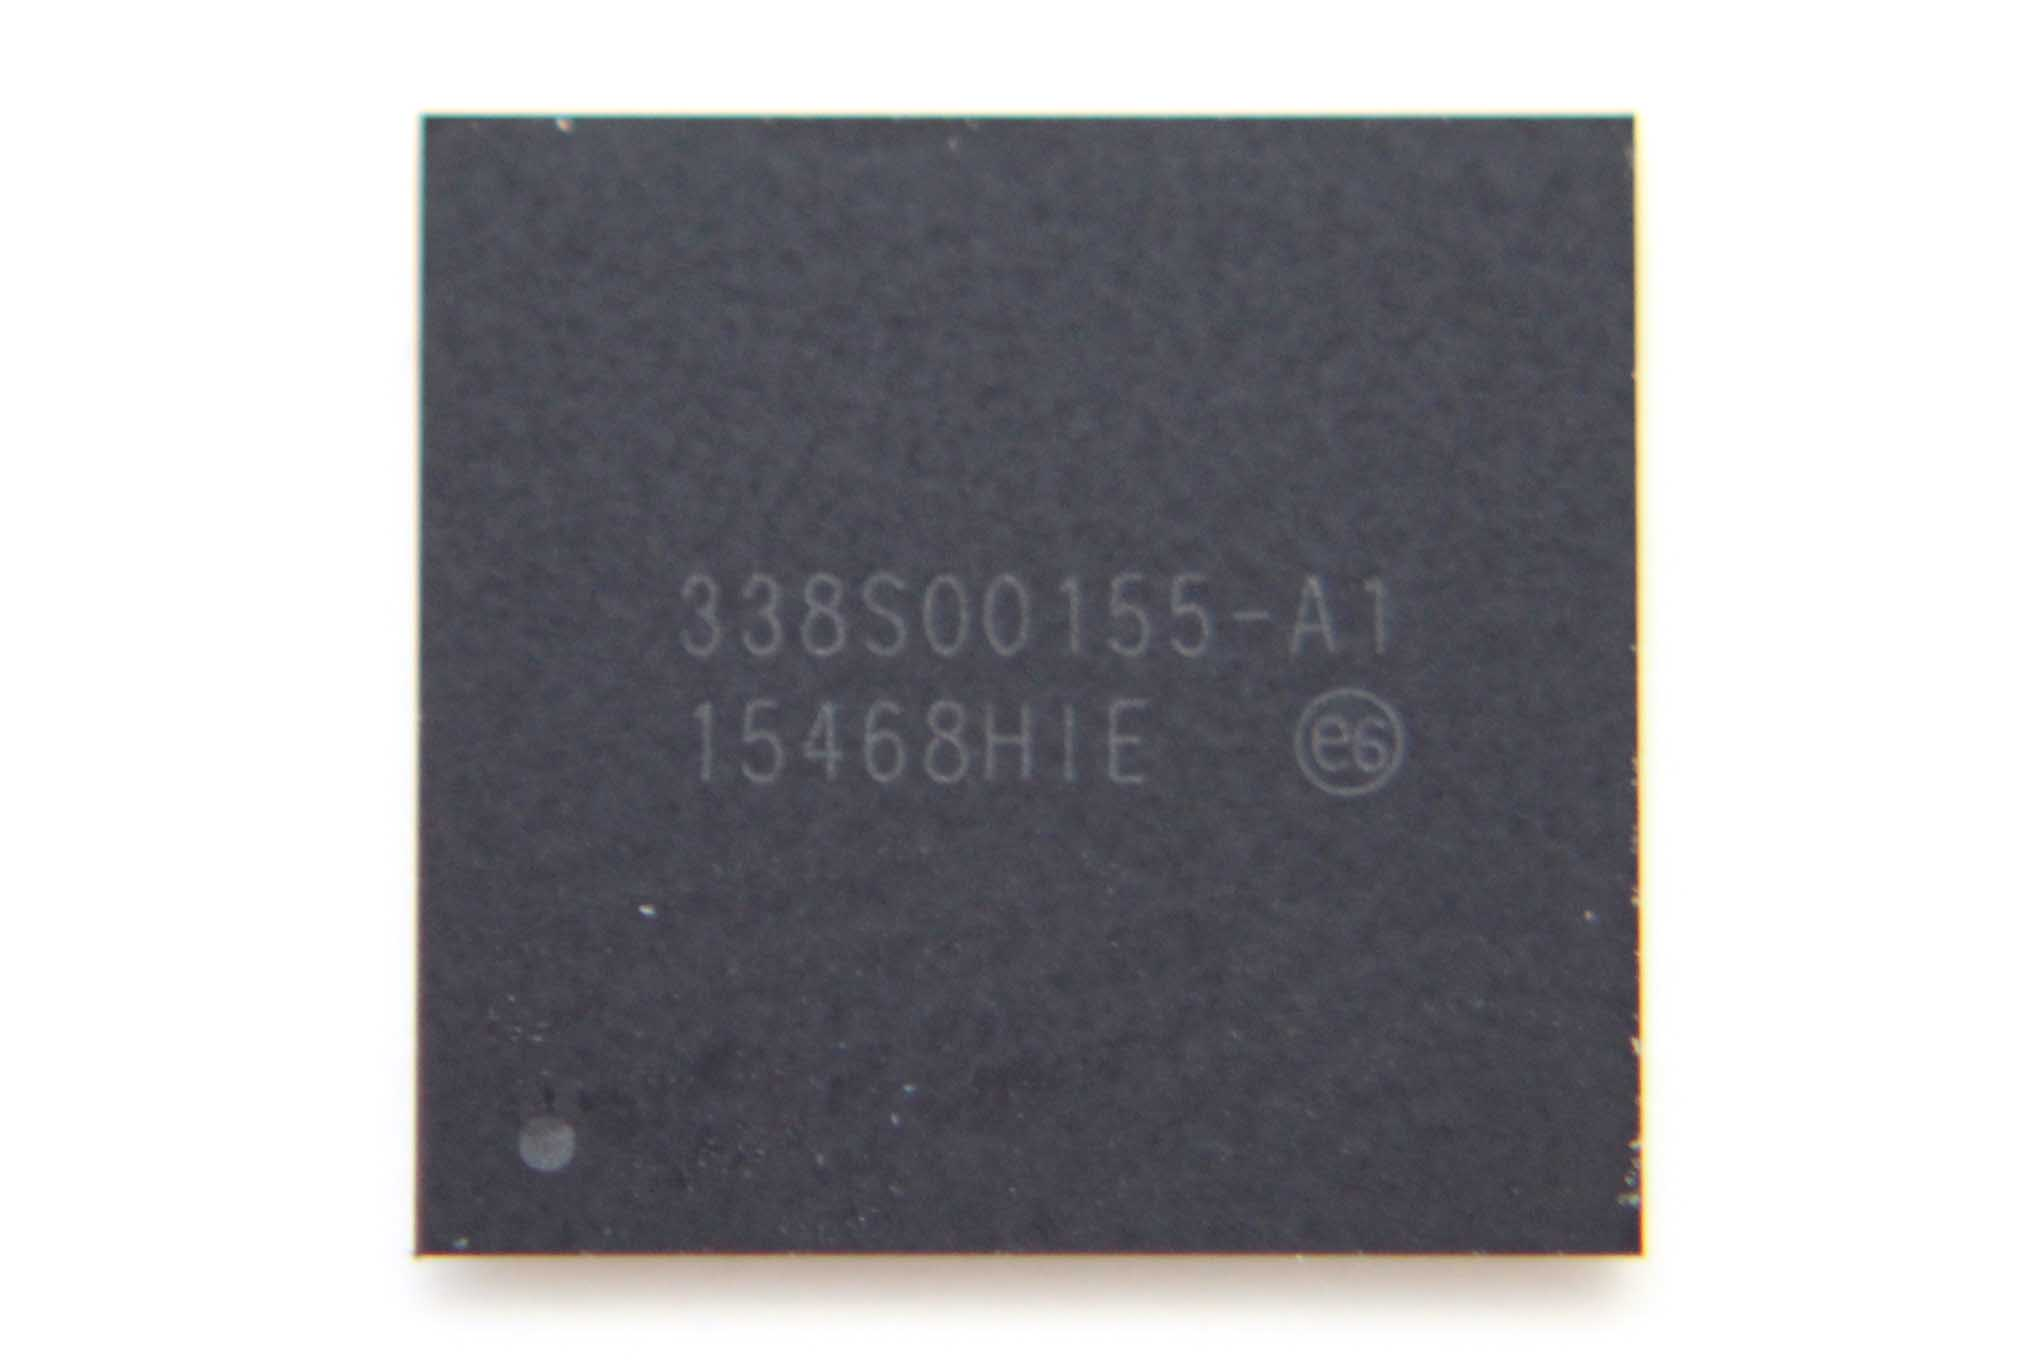 IPHONE 6S 6S PLUS POWER IC 338S00155-A1 APPLE